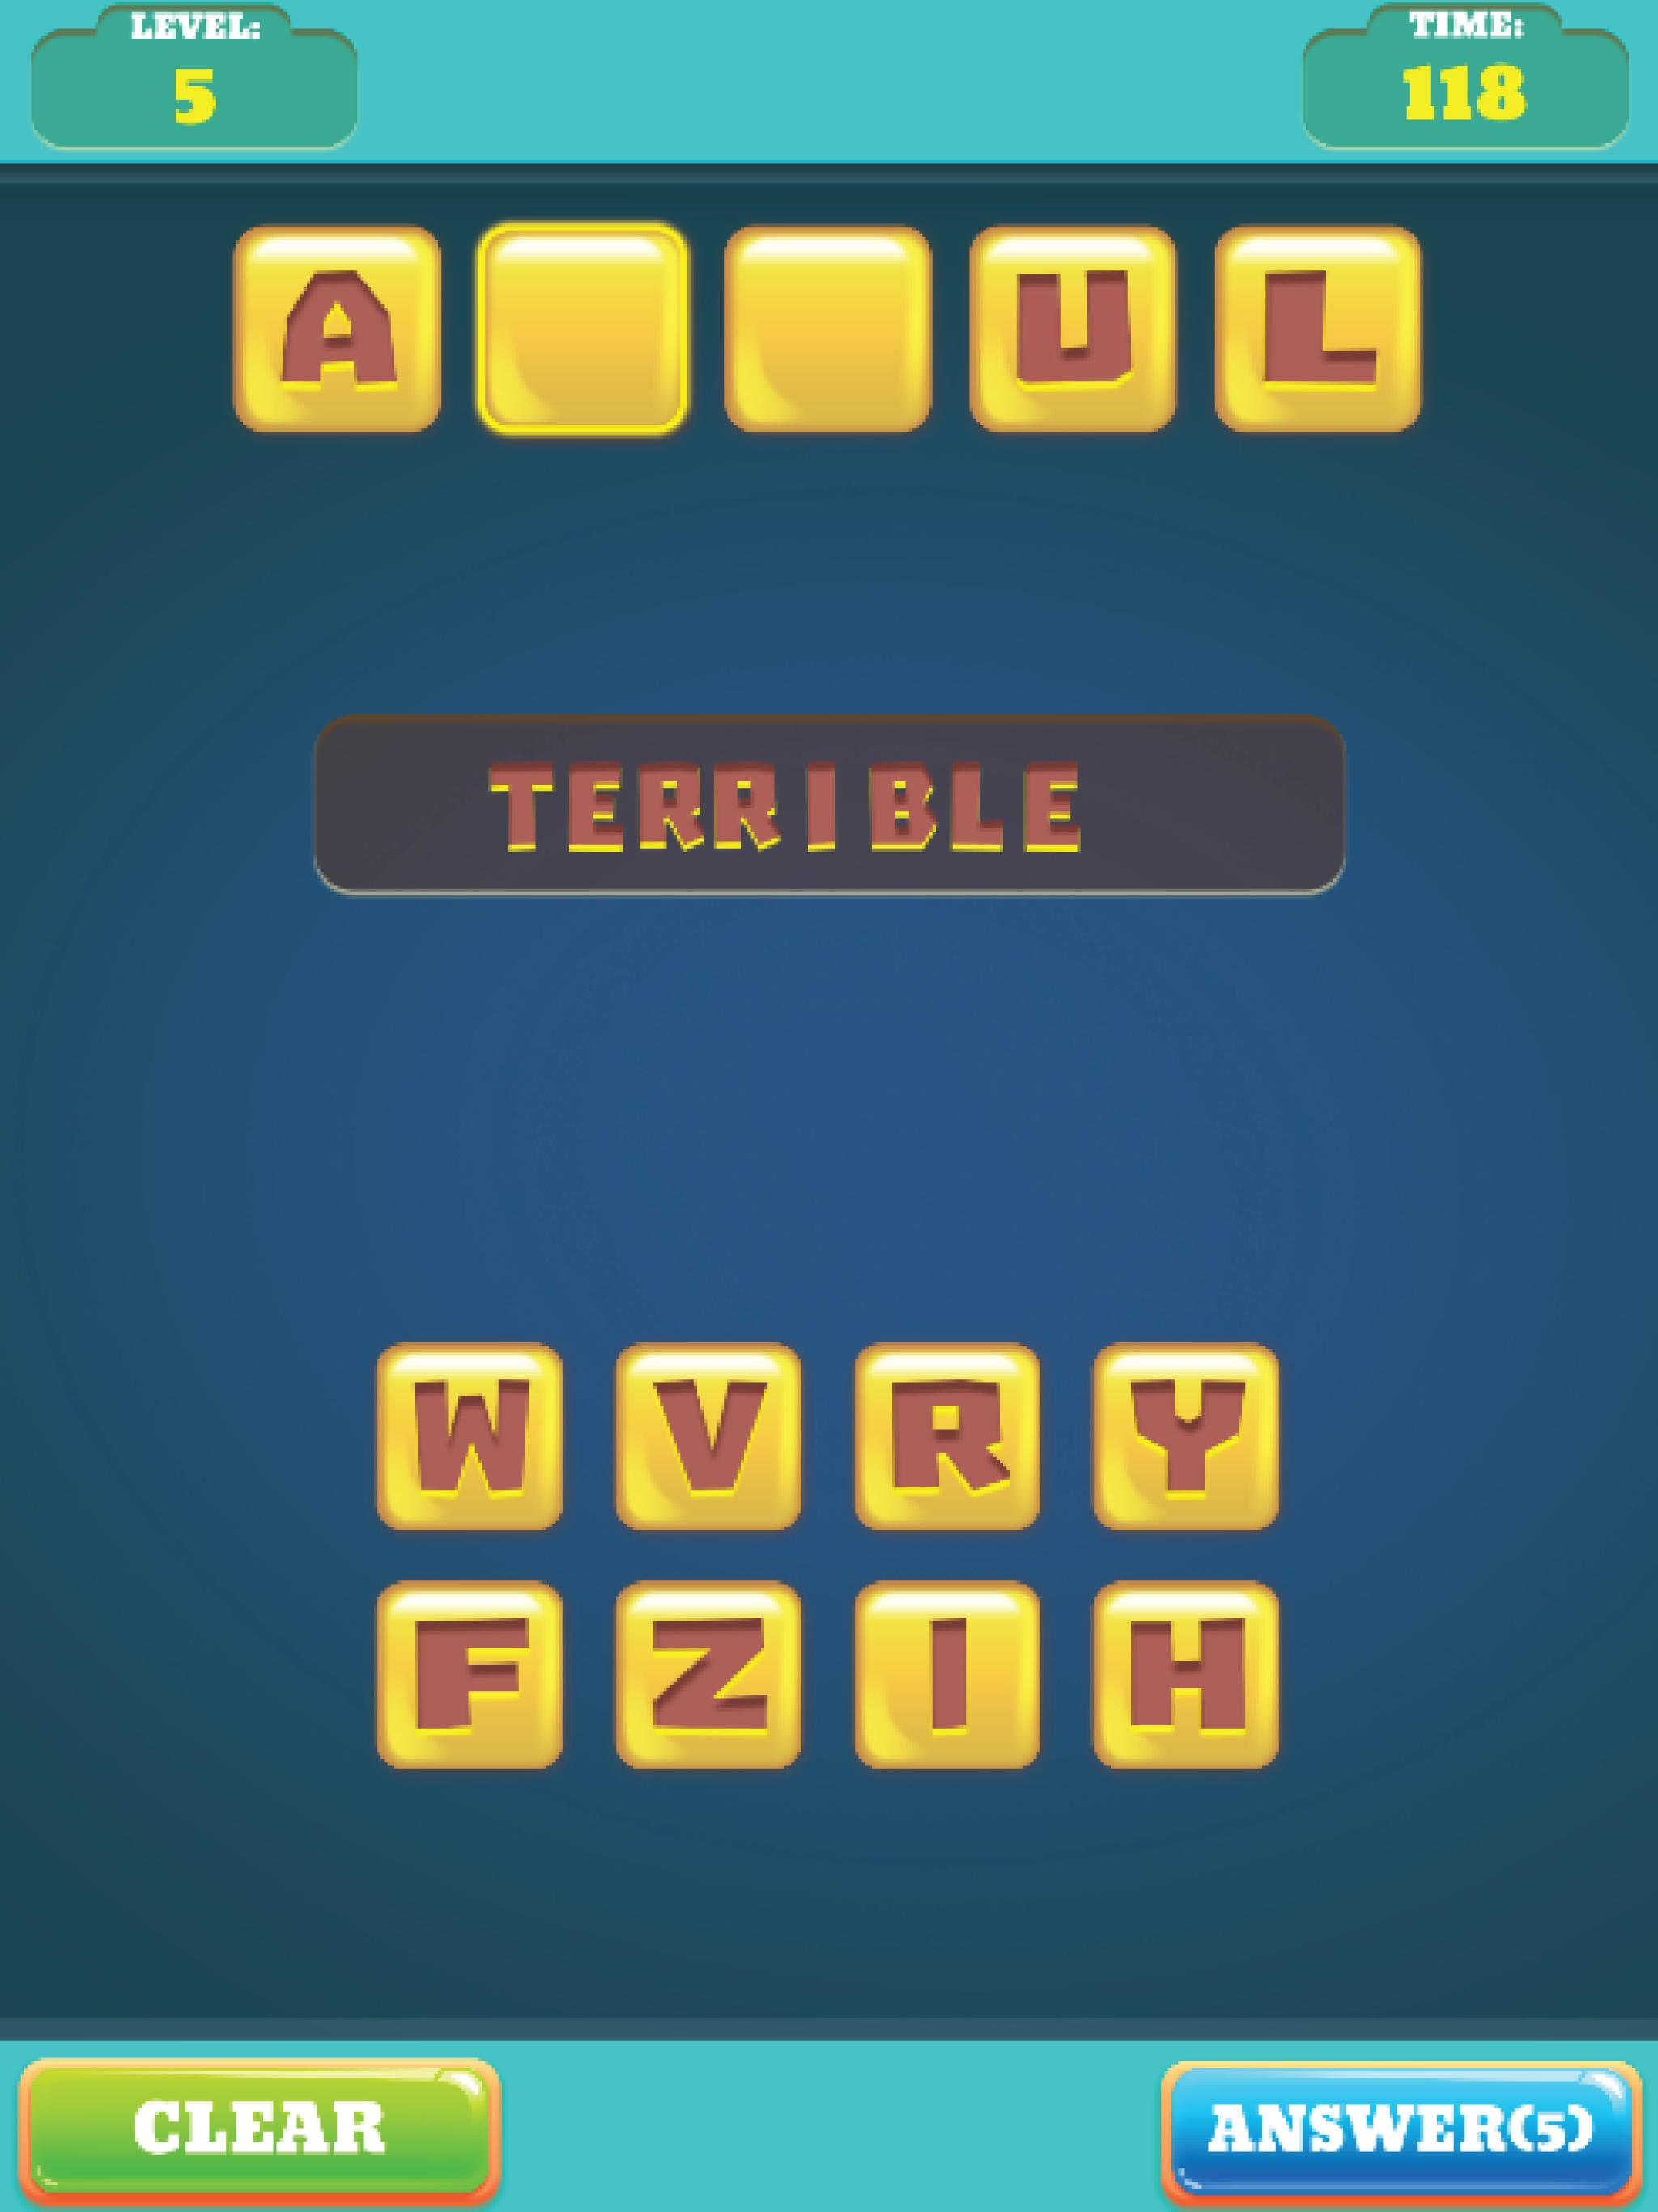 📃 Synonym Puzzle - Synonyms - Synonym Quiz for Android